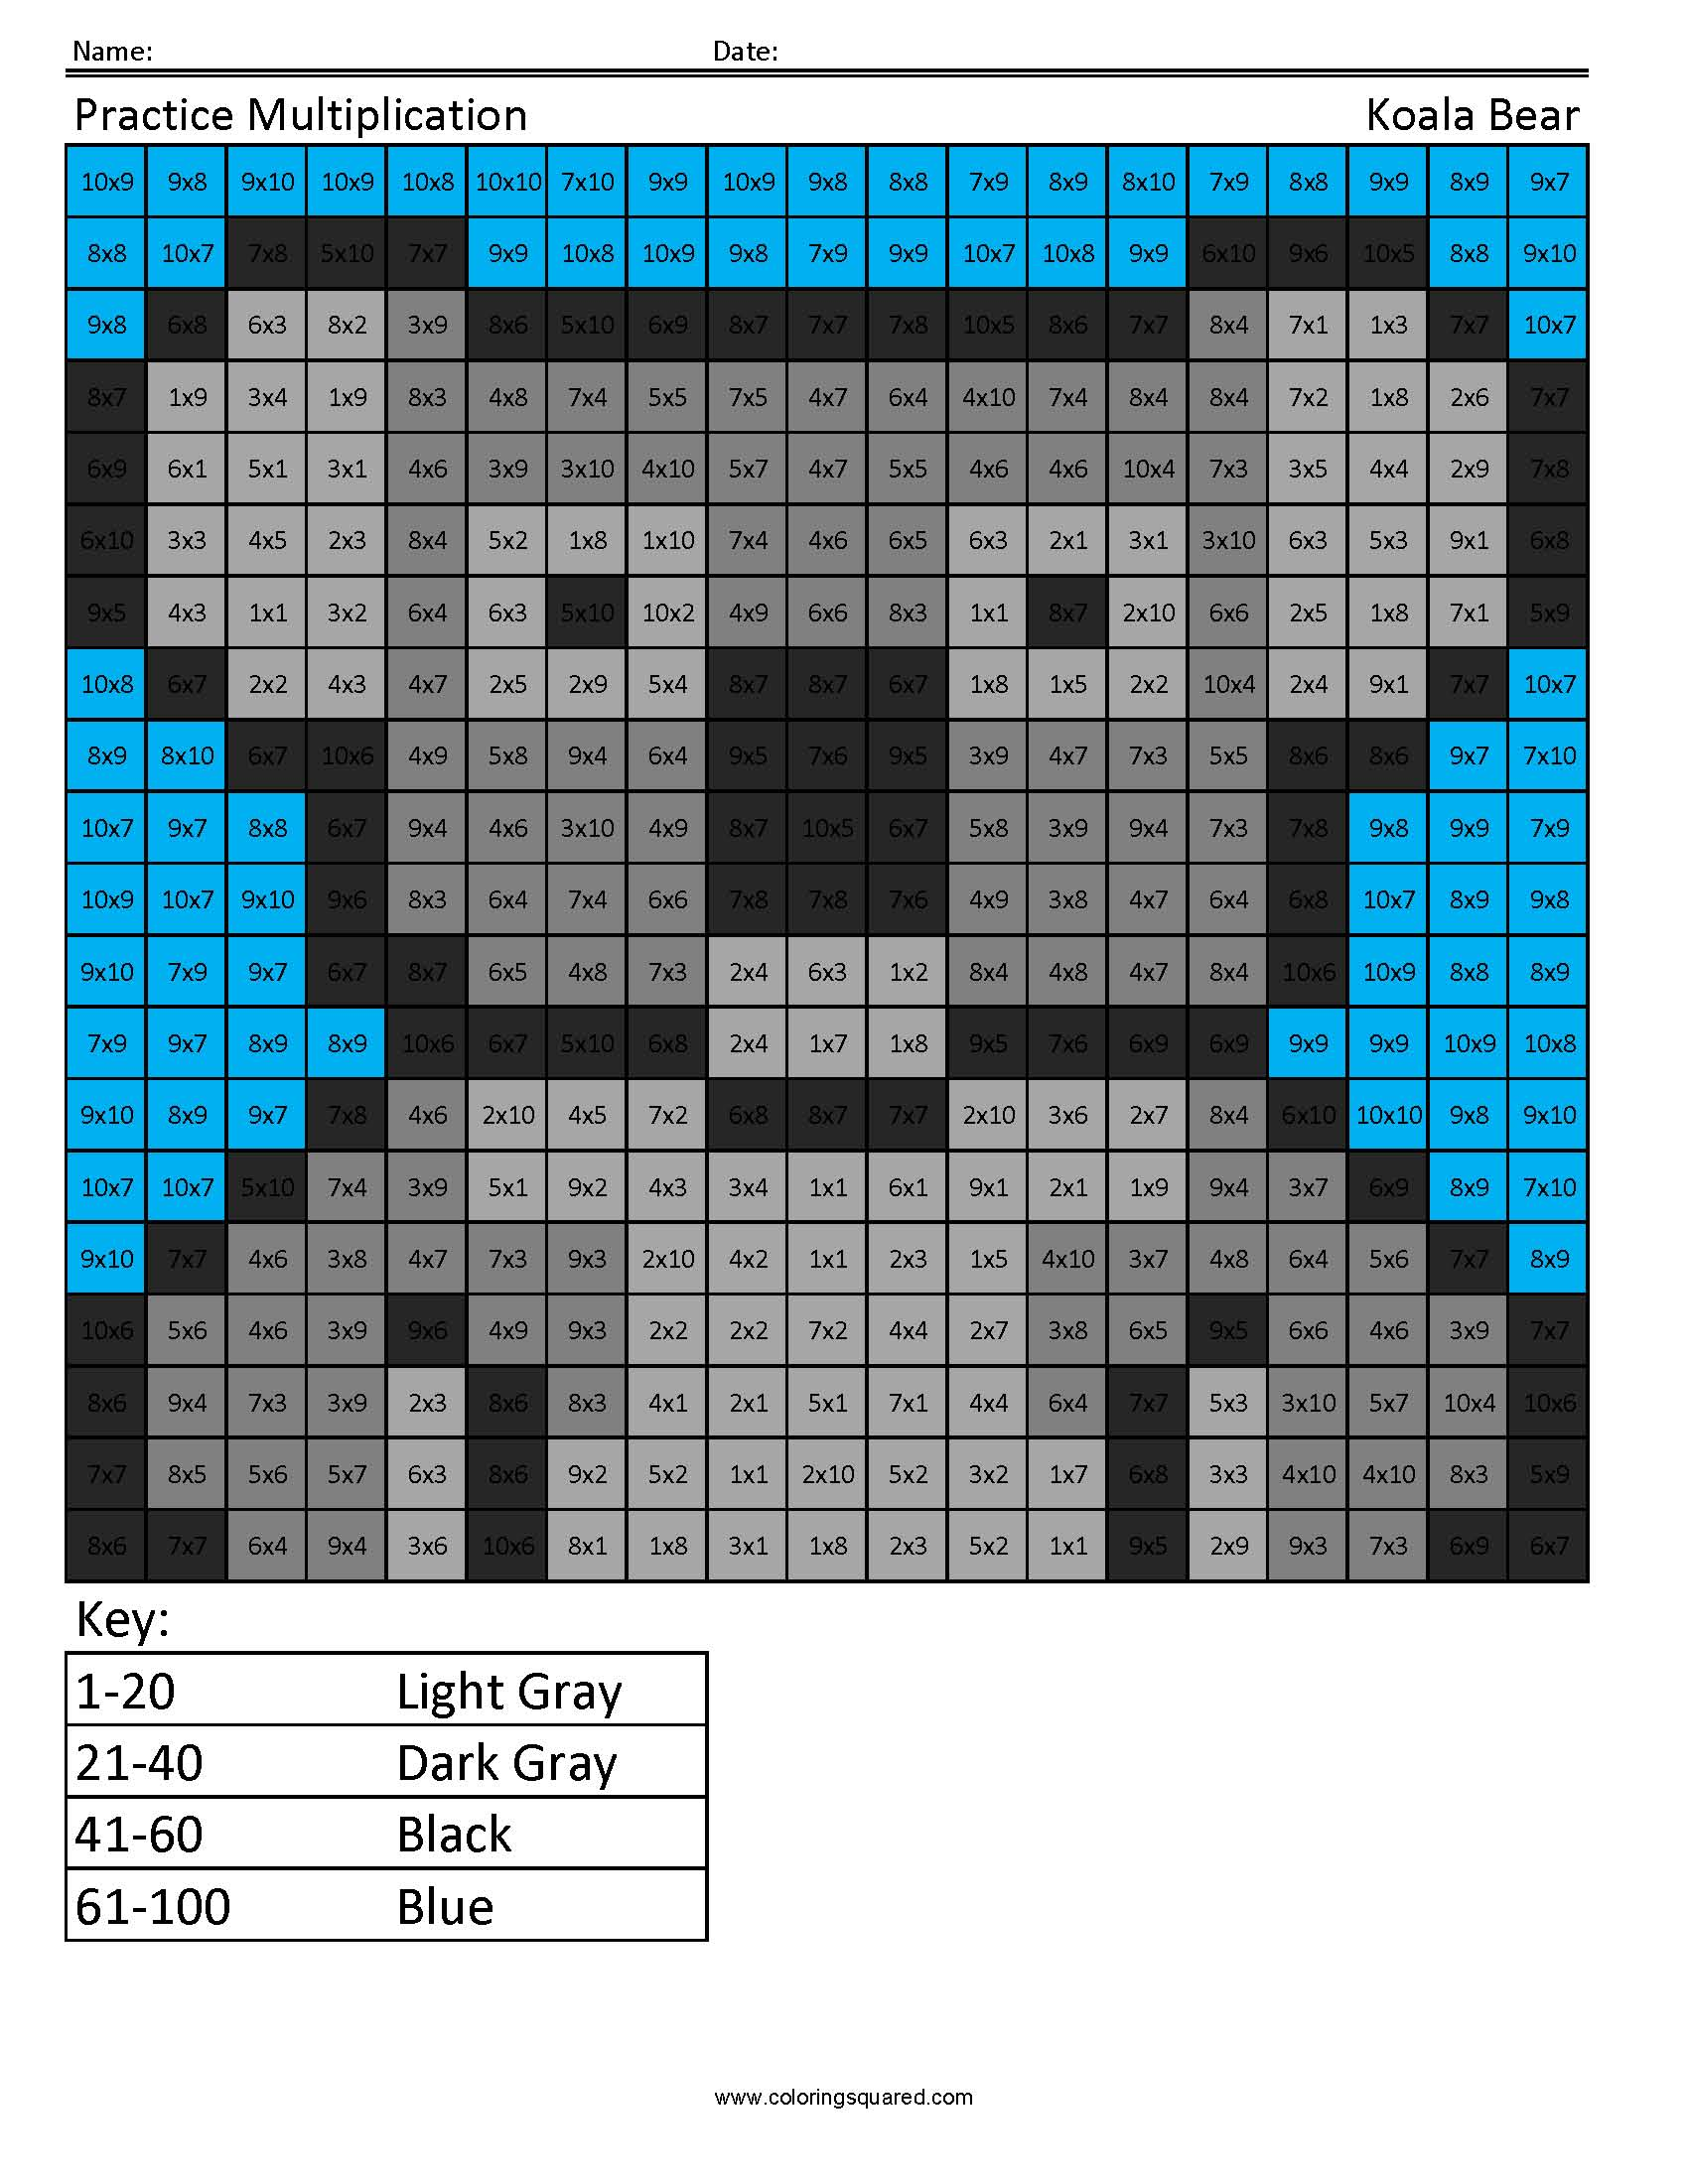 Practice Multiplication- Koala Bear - Coloring Squared